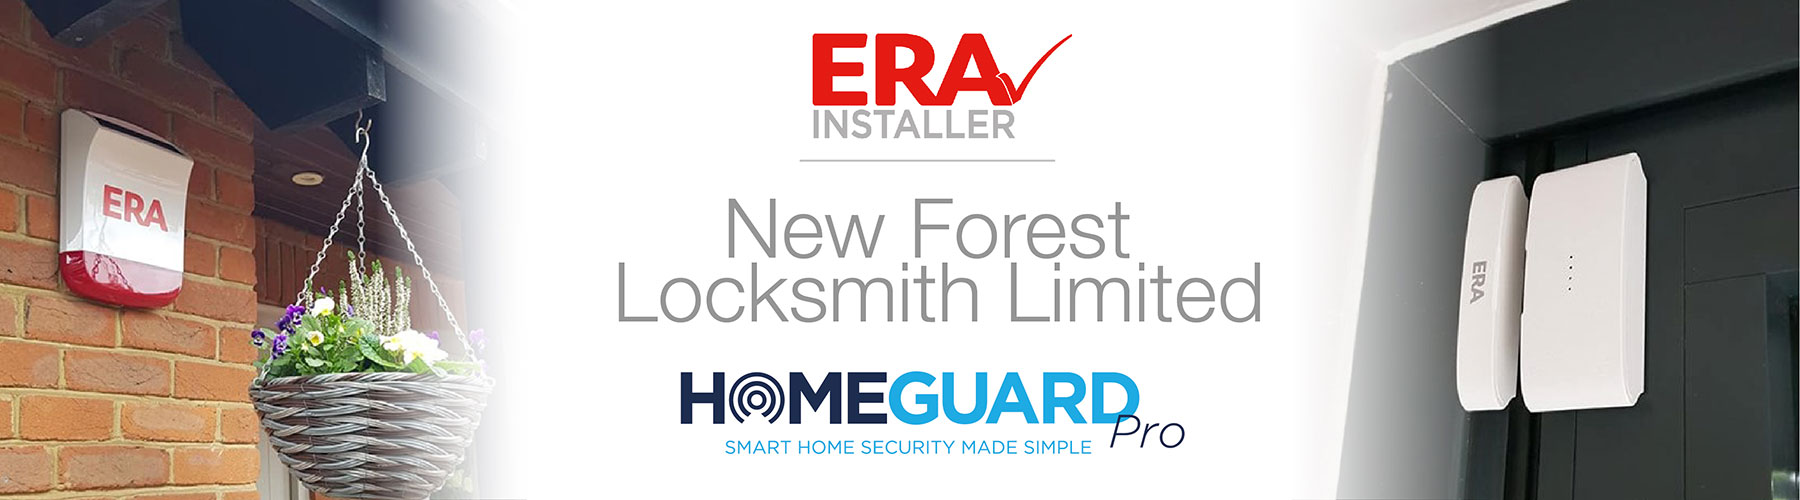 ERA Installer Testimonial New Forest